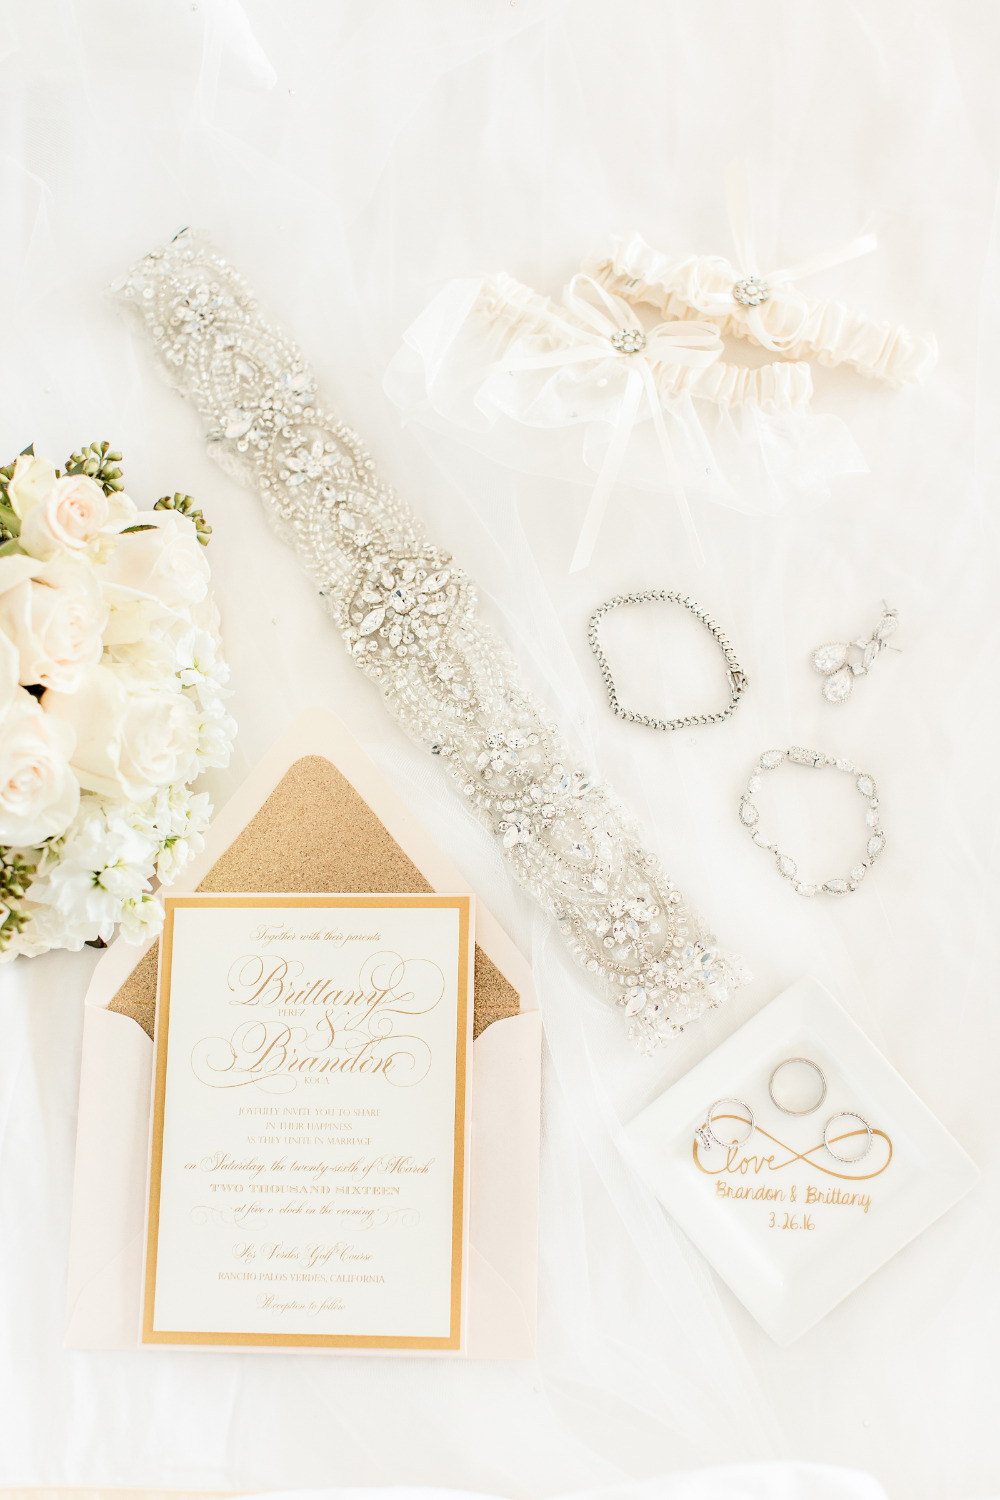 wedding accessories and gold invites